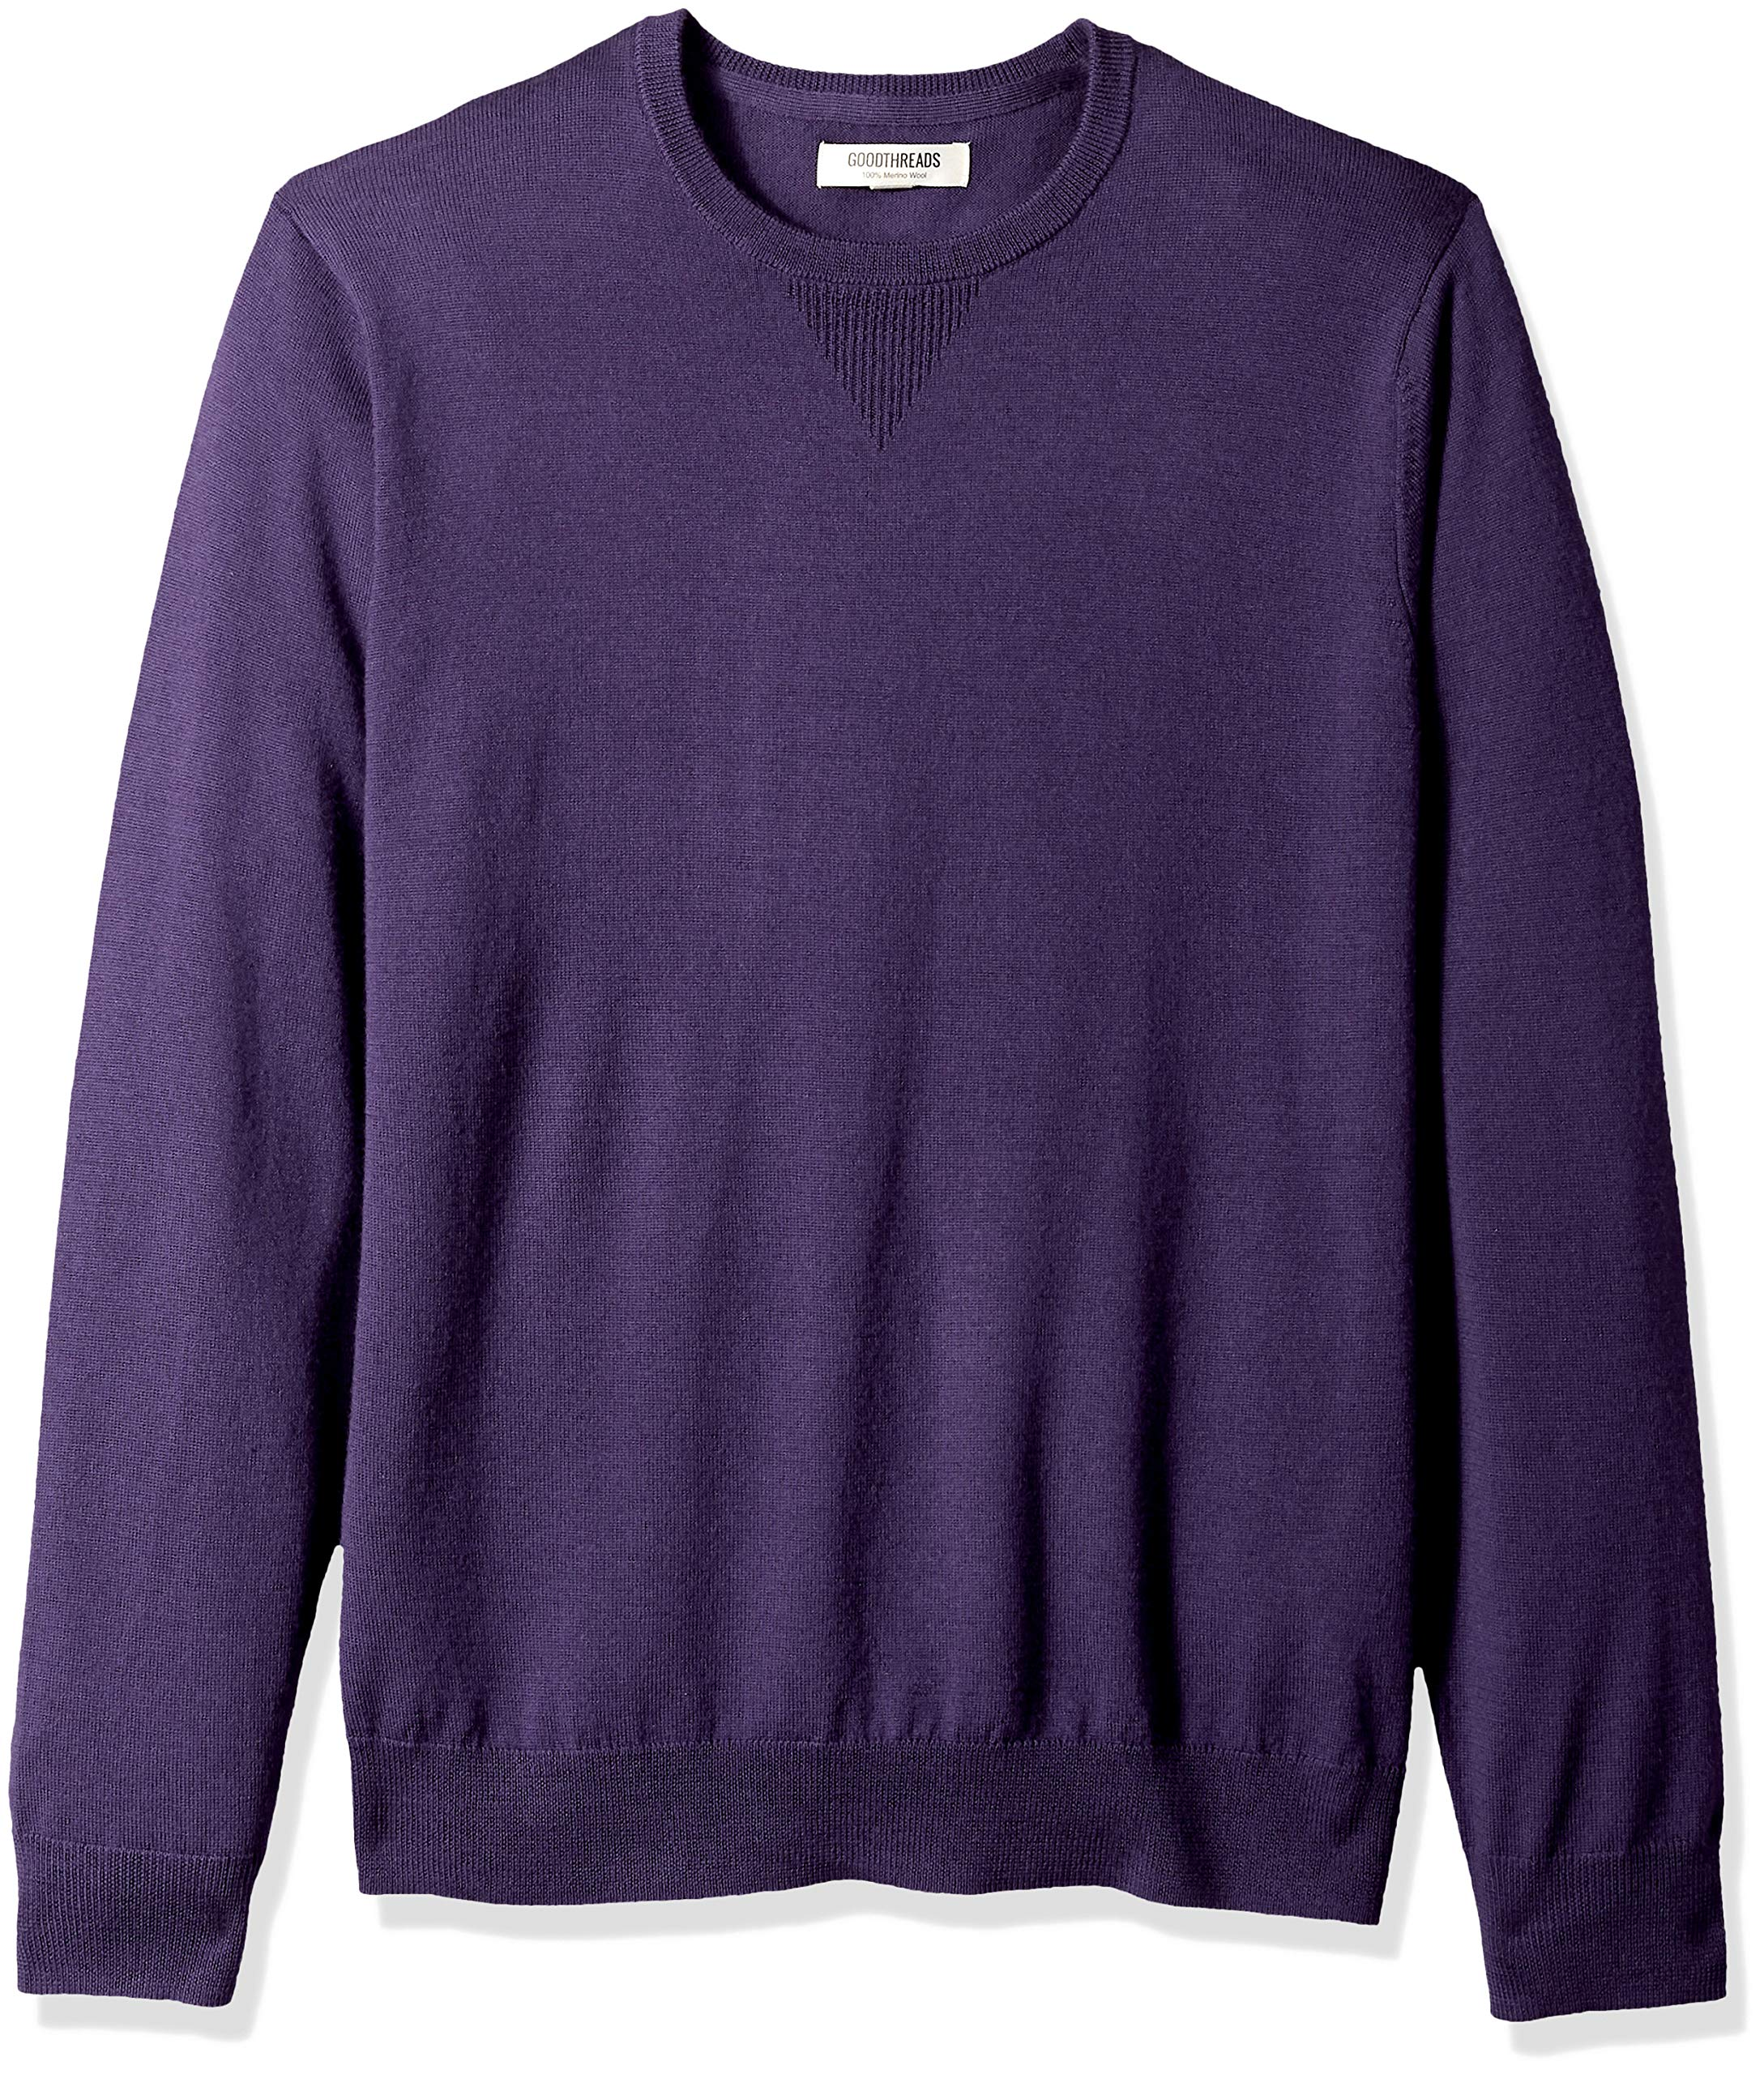 Goodthreads Men's Merino Wool Crewneck Sweater, deep Purple, Small by Goodthreads